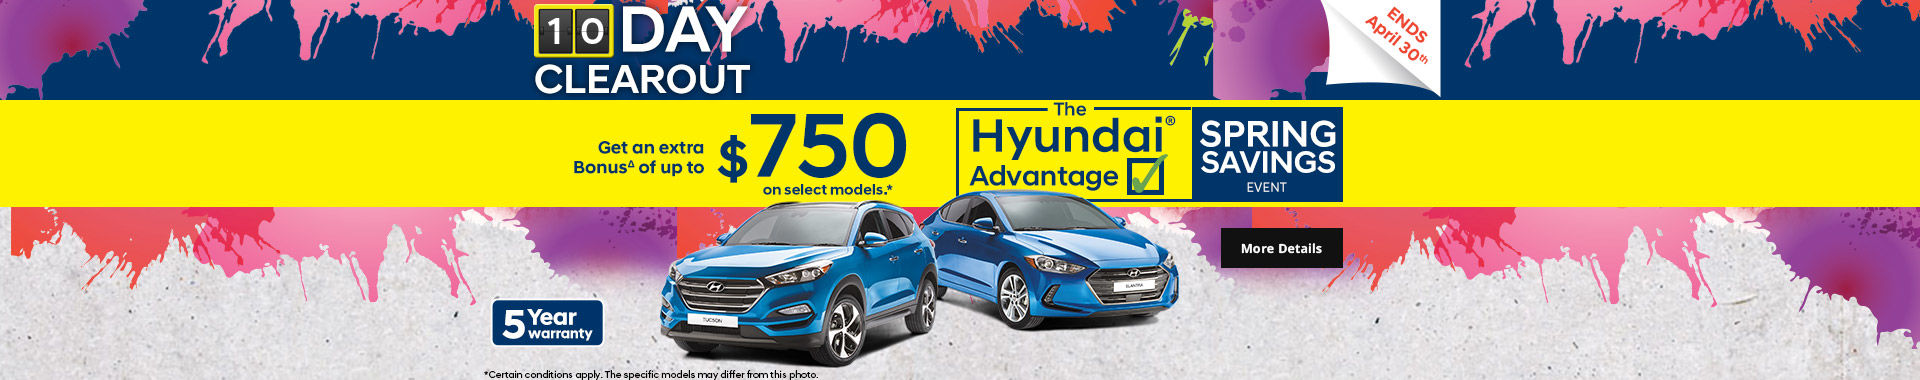 Hyundai's 10 Day Clearout sale Header